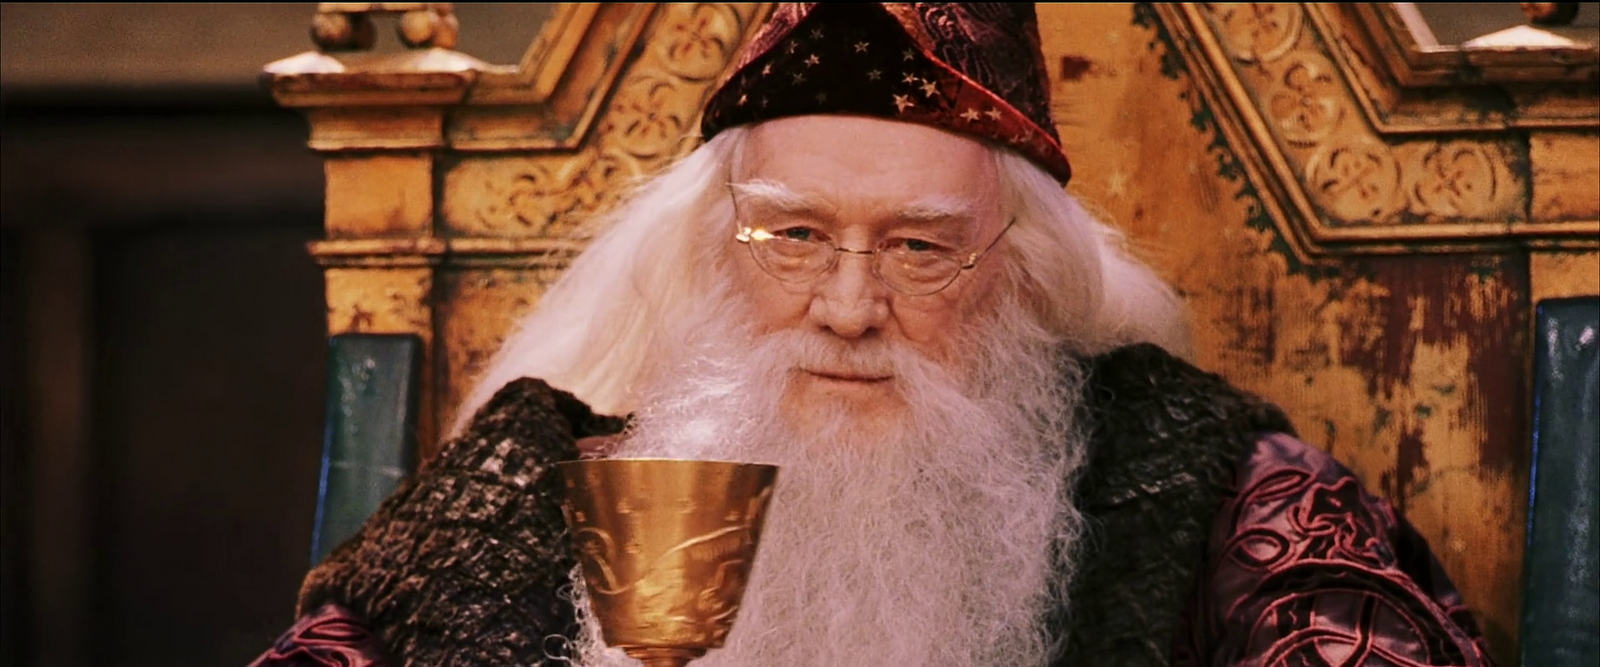 richard-harris-dumbledore.png